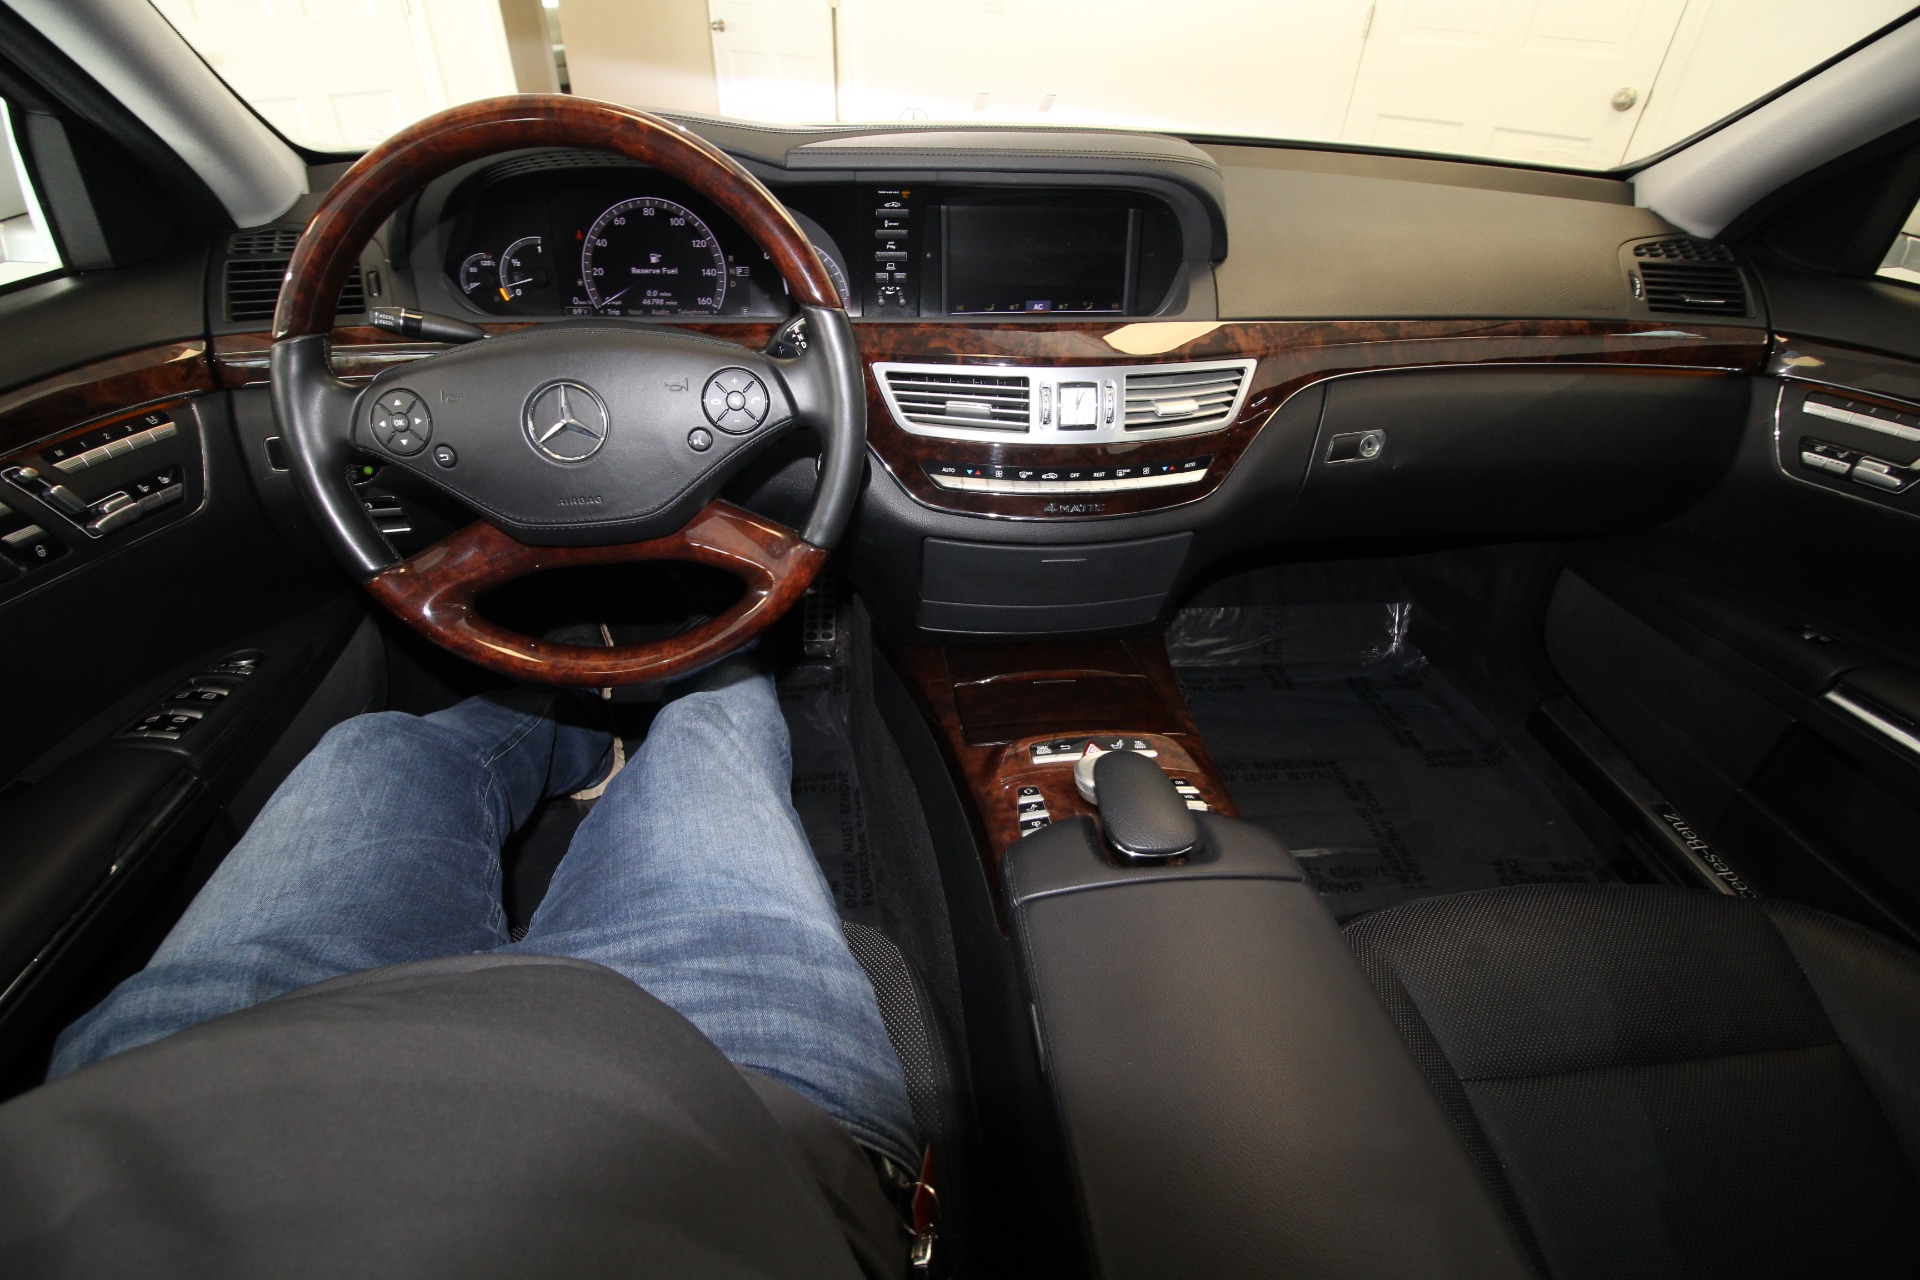 Used 2013 Mercedes-Benz S-Class S550 4-MATIC SUPERB LOW MILES PANO ROOF | Albany, NY